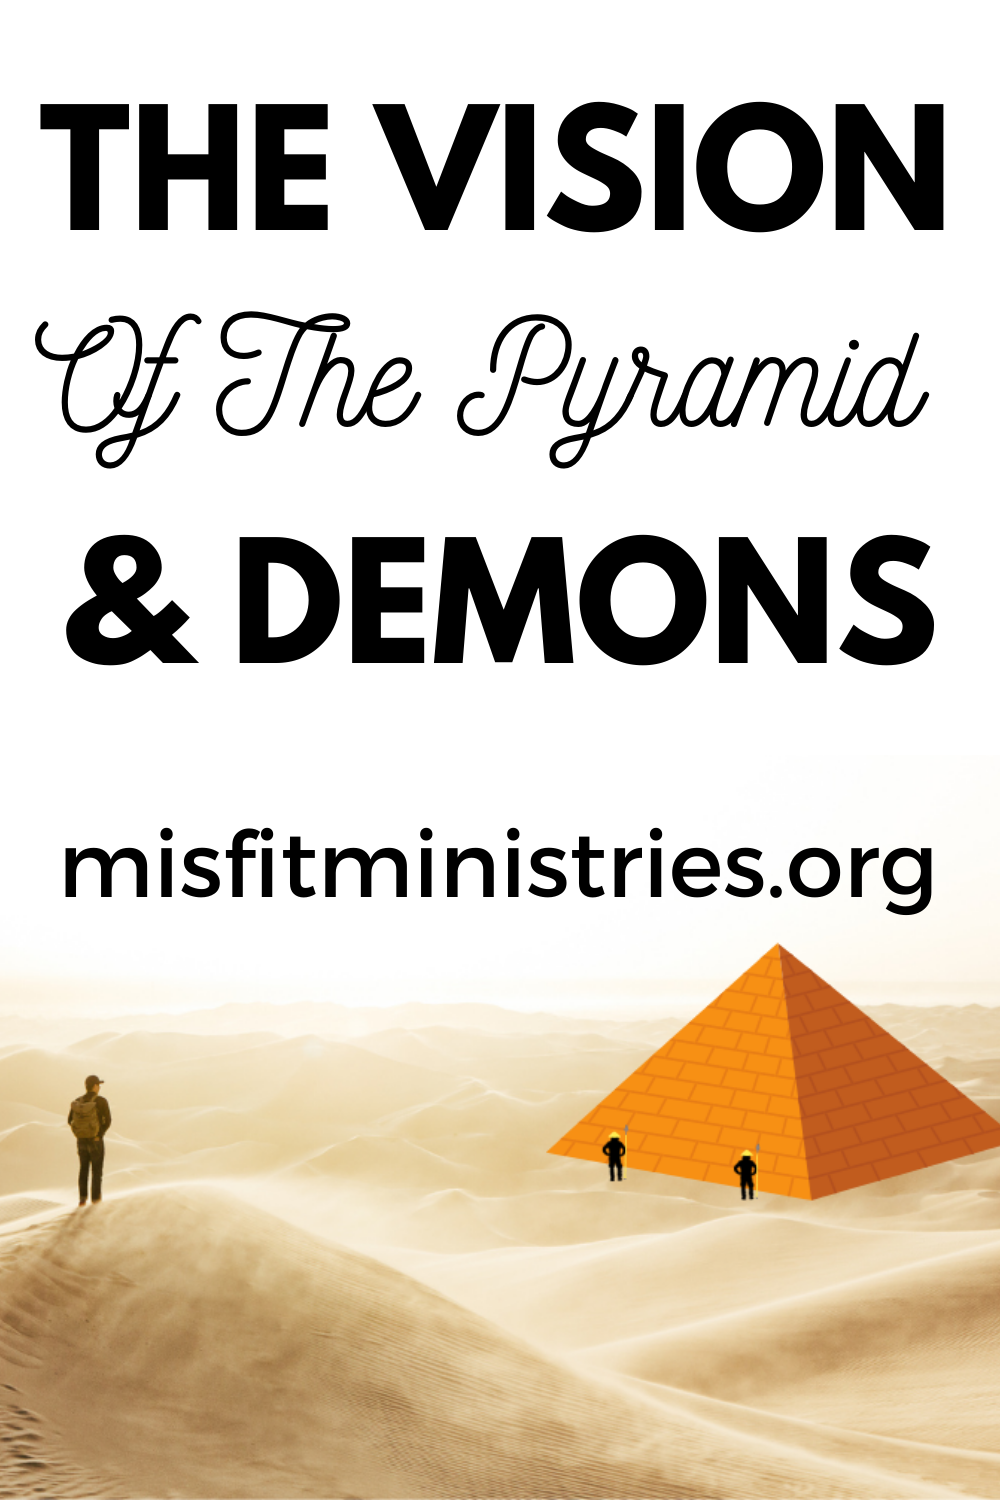 The vision of the pyramid and demons